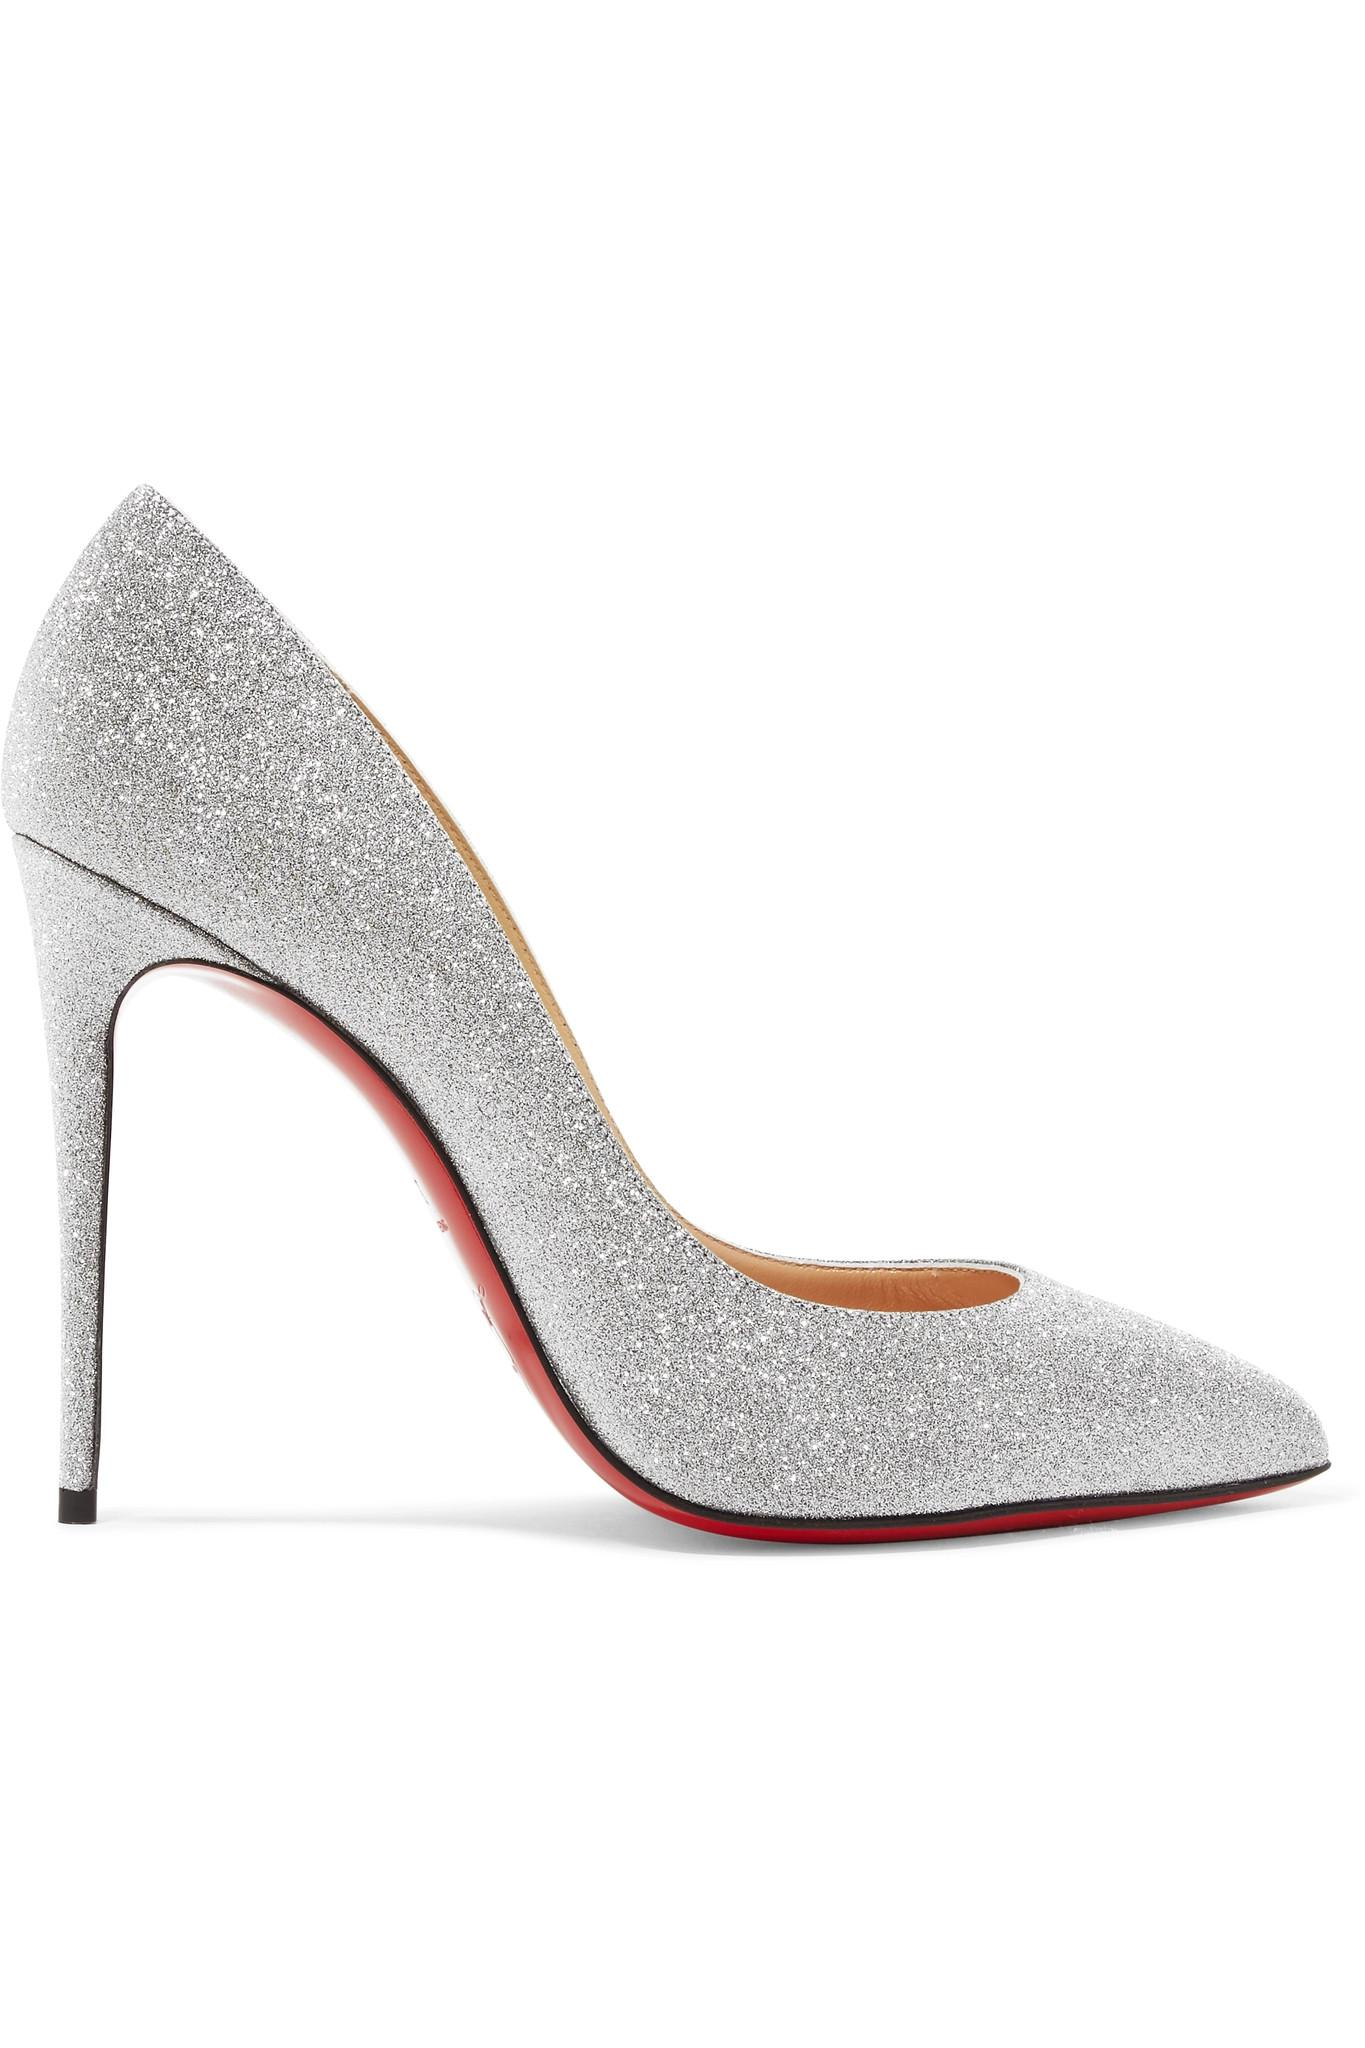 6a4b097fd911 Christian Louboutin. Women s Metallic Pigalle Follies 100 Glittered Leather  Court Shoes